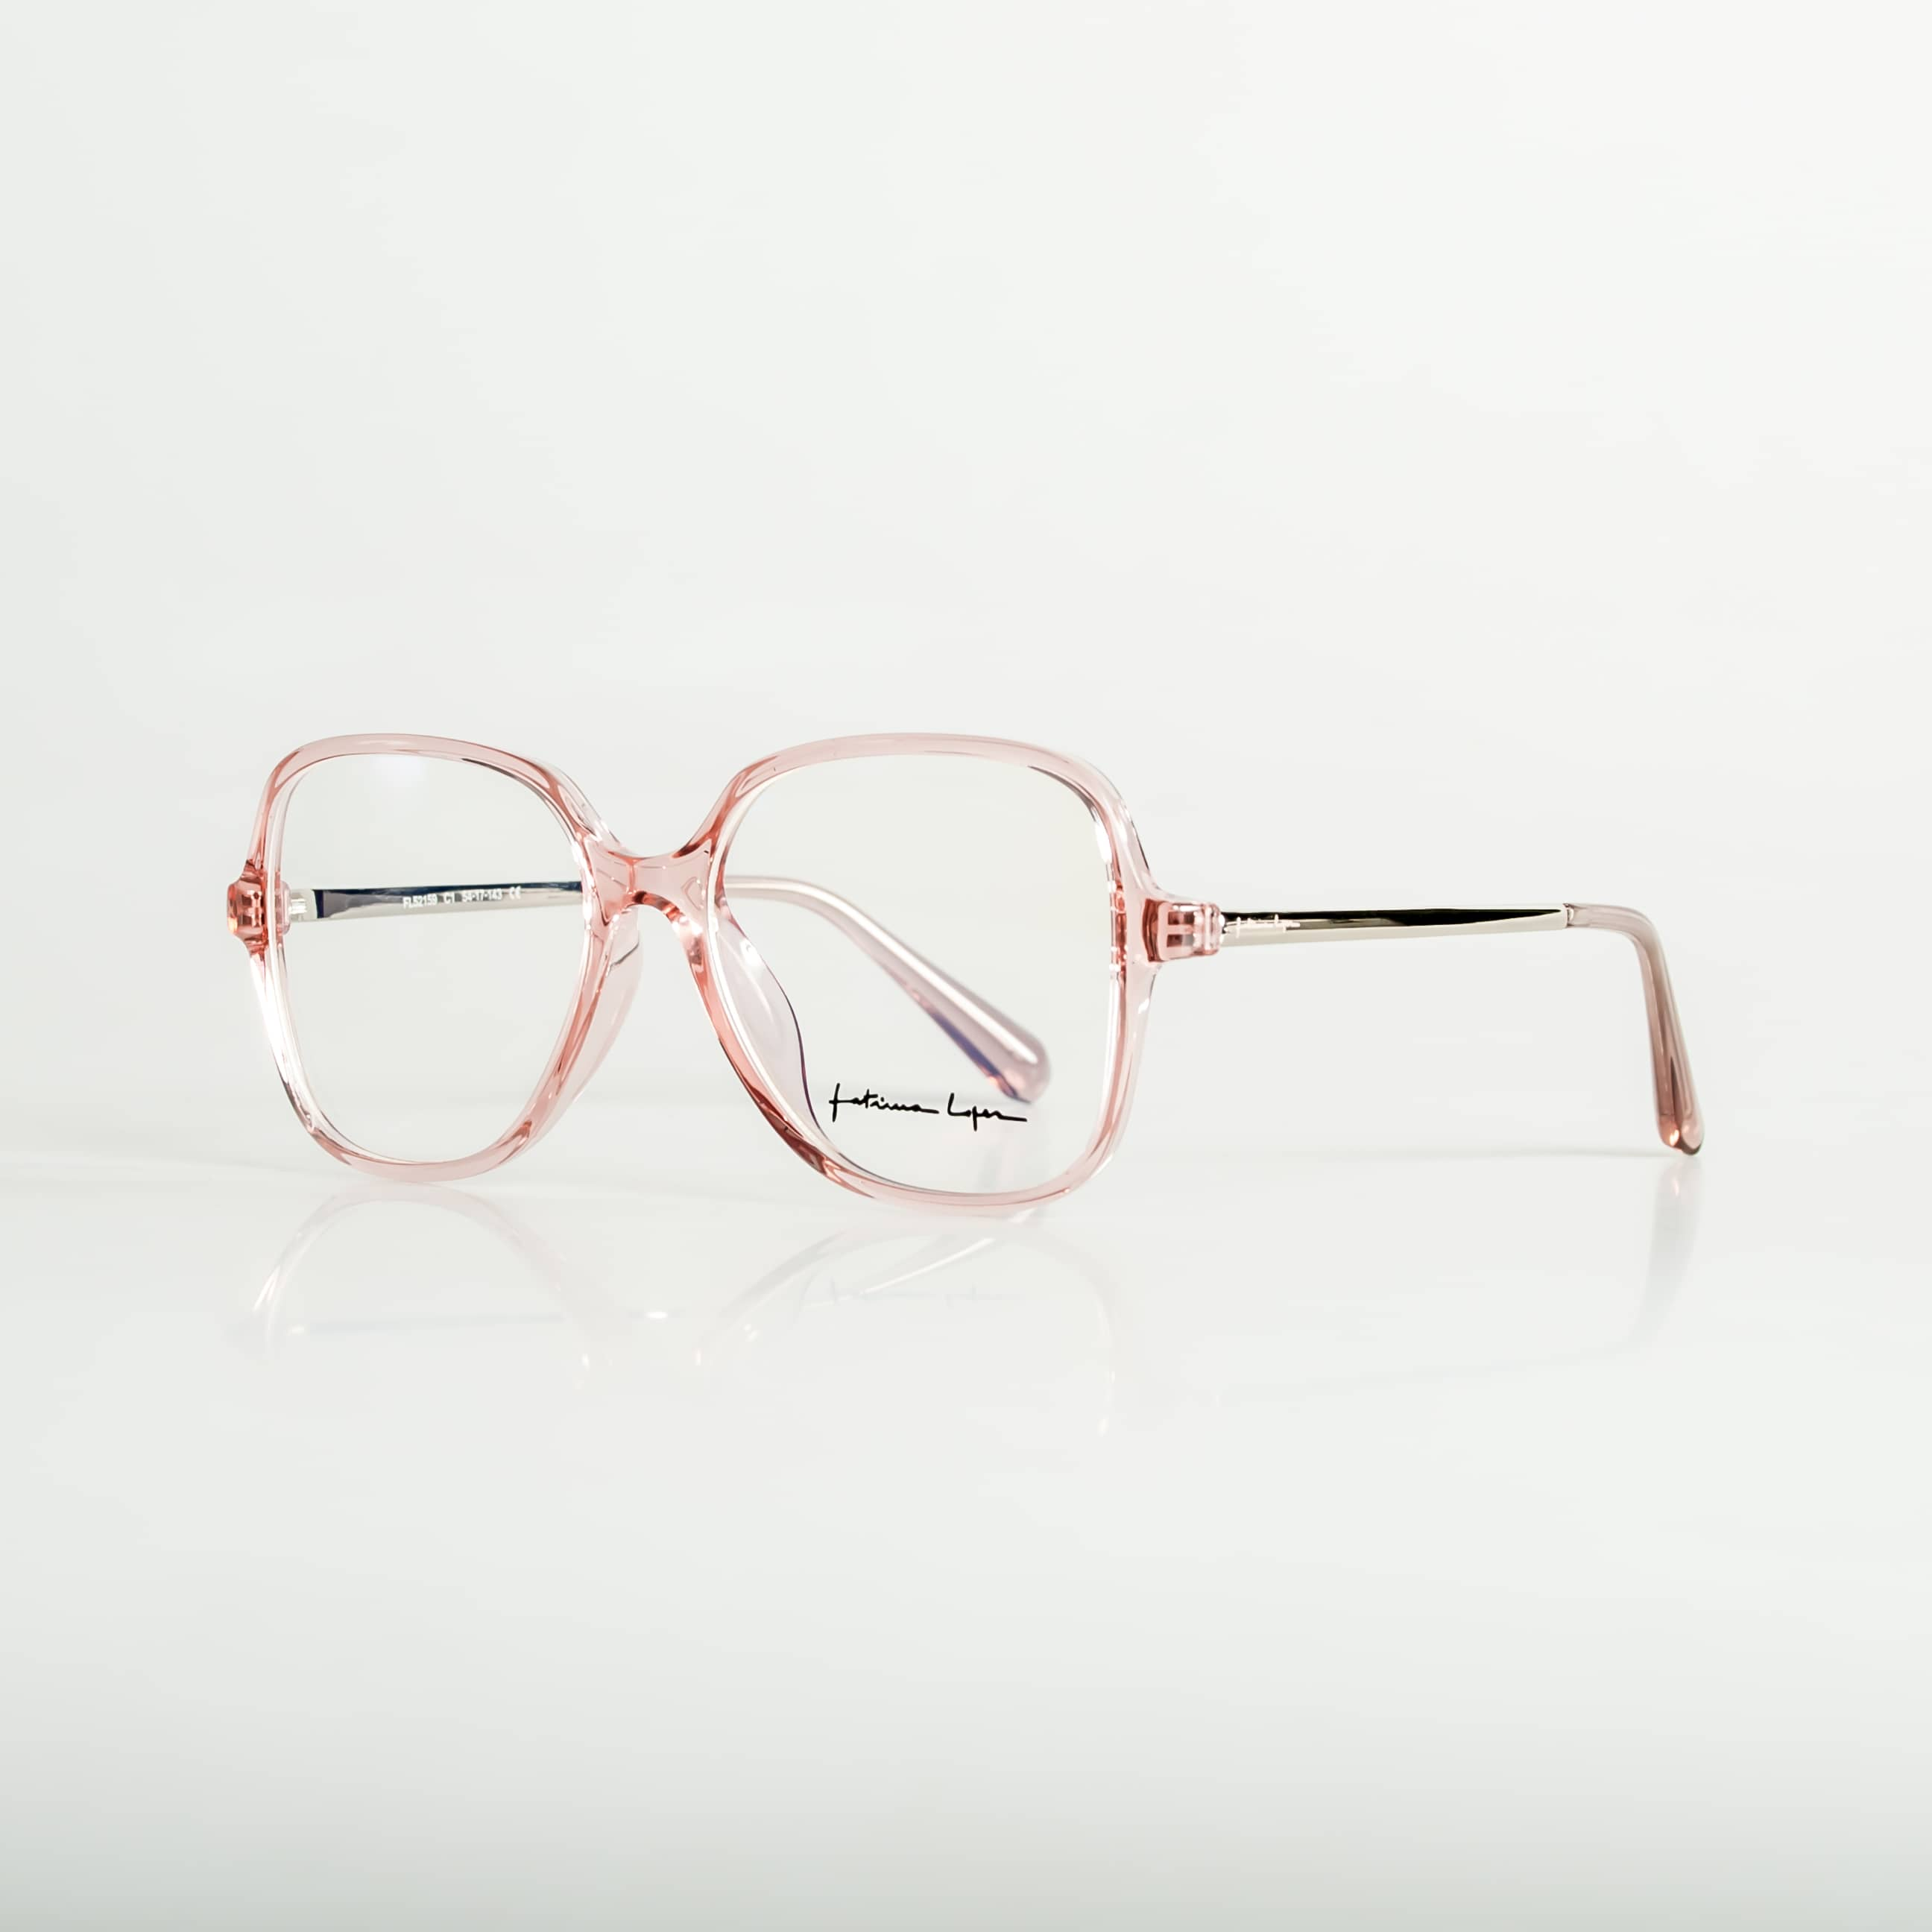 Glasses FL52159 C1 0